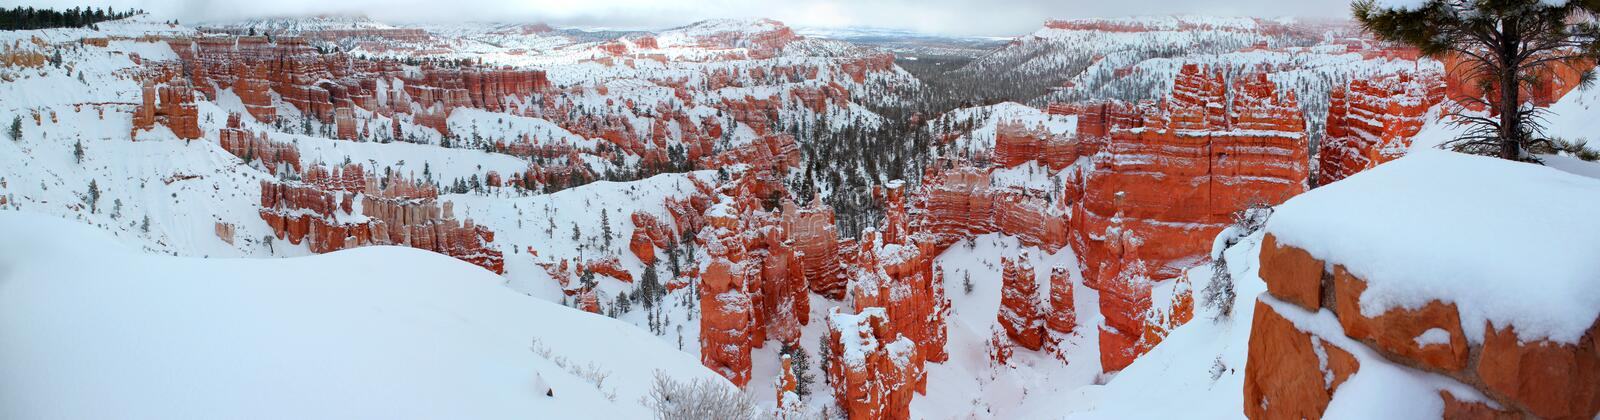 Mooi panorama van Bryce-canion Nationalpark met sneeuw in de Winter met rode rotsen/Utah/de V.S. stock foto